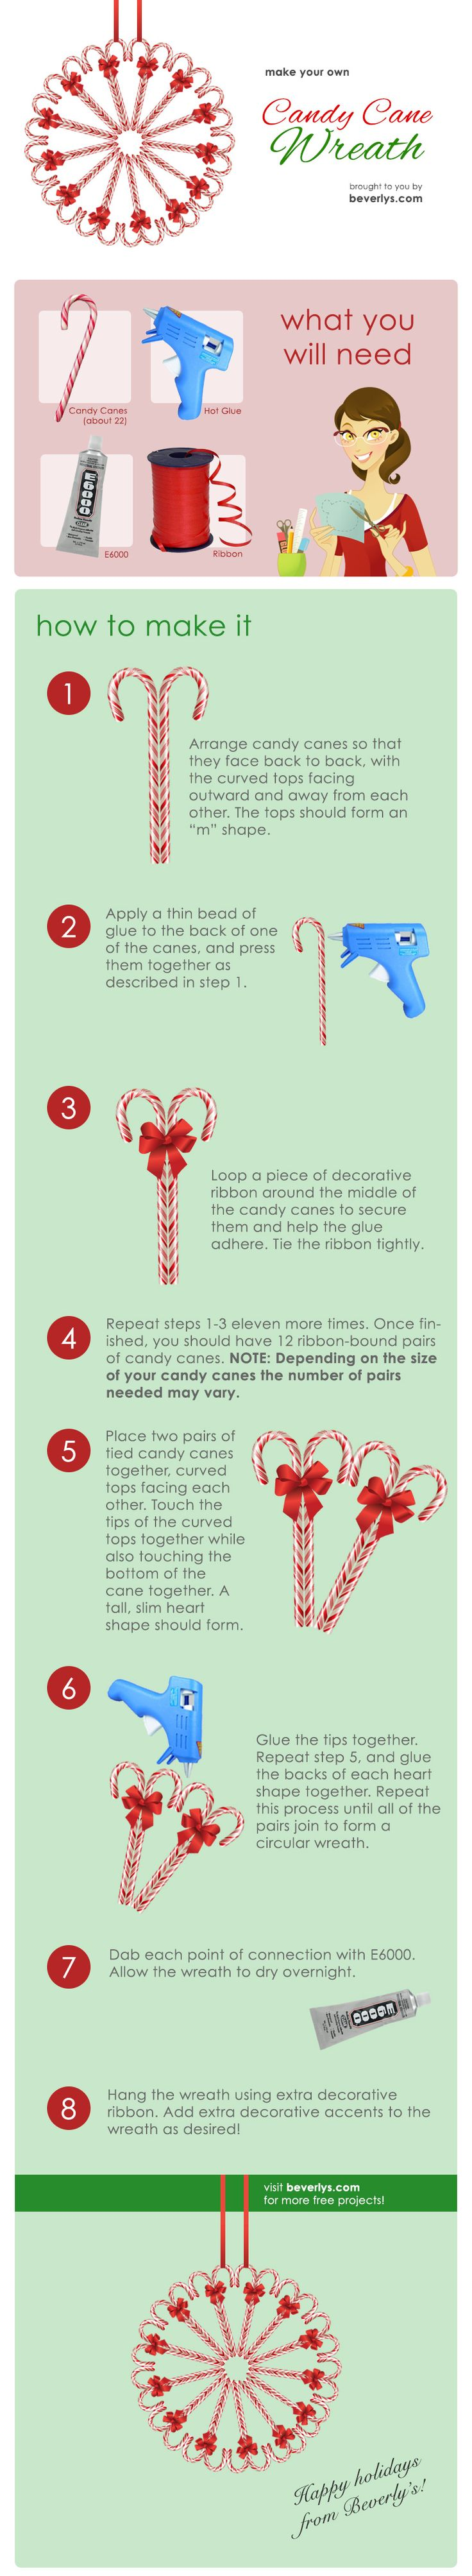 Pin and re-pin this awesome infographic that shows how to create our beloved Candy Cane Wreath! Just in time for the holiday season. #beverlys #beverlyfabrics #candy #candycane #wreath #christmas #holiday #xmas #decor